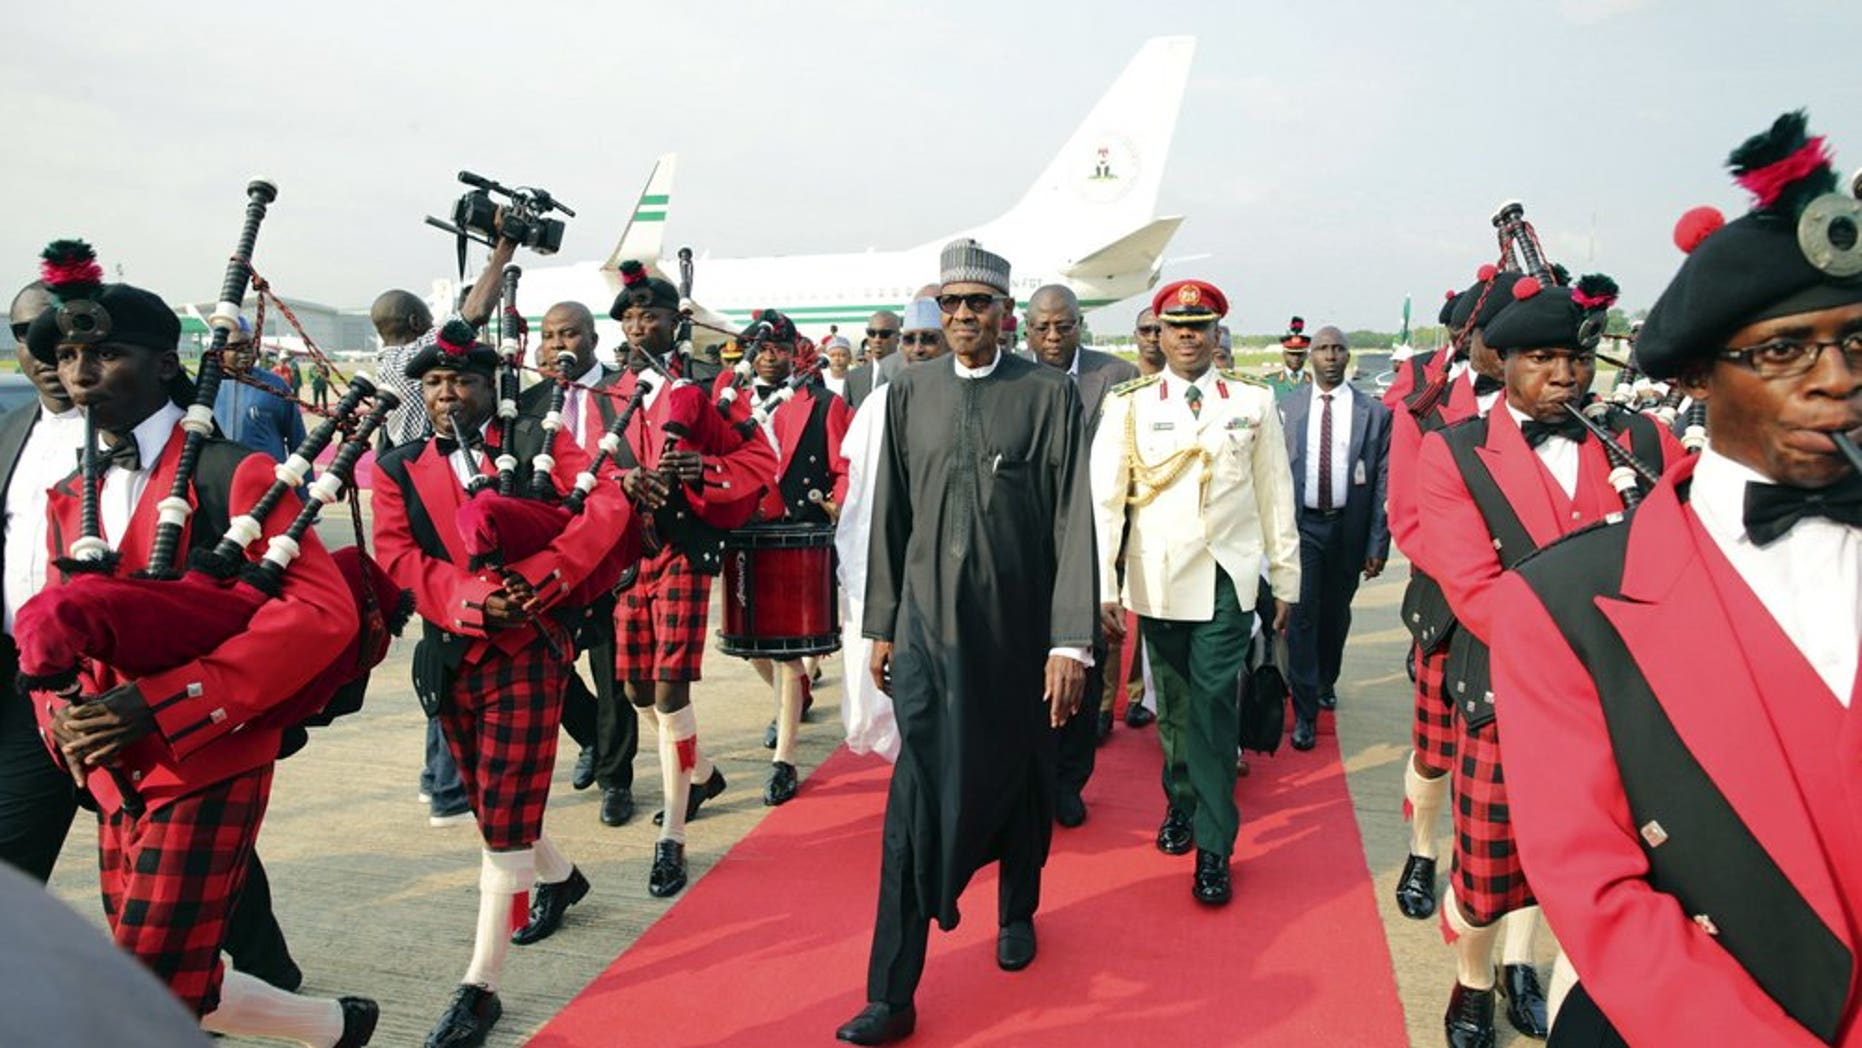 In this Aug. 19, 2017, file photo released by the Nigeria State House, Nigeria's President Muhammadu Buhari, center, walks upon his arrival at the airport in Abuja, Nigeria, after returning from more than three months in London for medical treatment. The coronavirus pandemic could narrow one gaping inequality in Africa, where some heads of state and other elite jet off to Europe or Asia for health care unavailable in their nations but as global travel restrictions tighten, they might have to take their chances at home. (Sunday Aghaeze/Nigeria State House via AP, File)